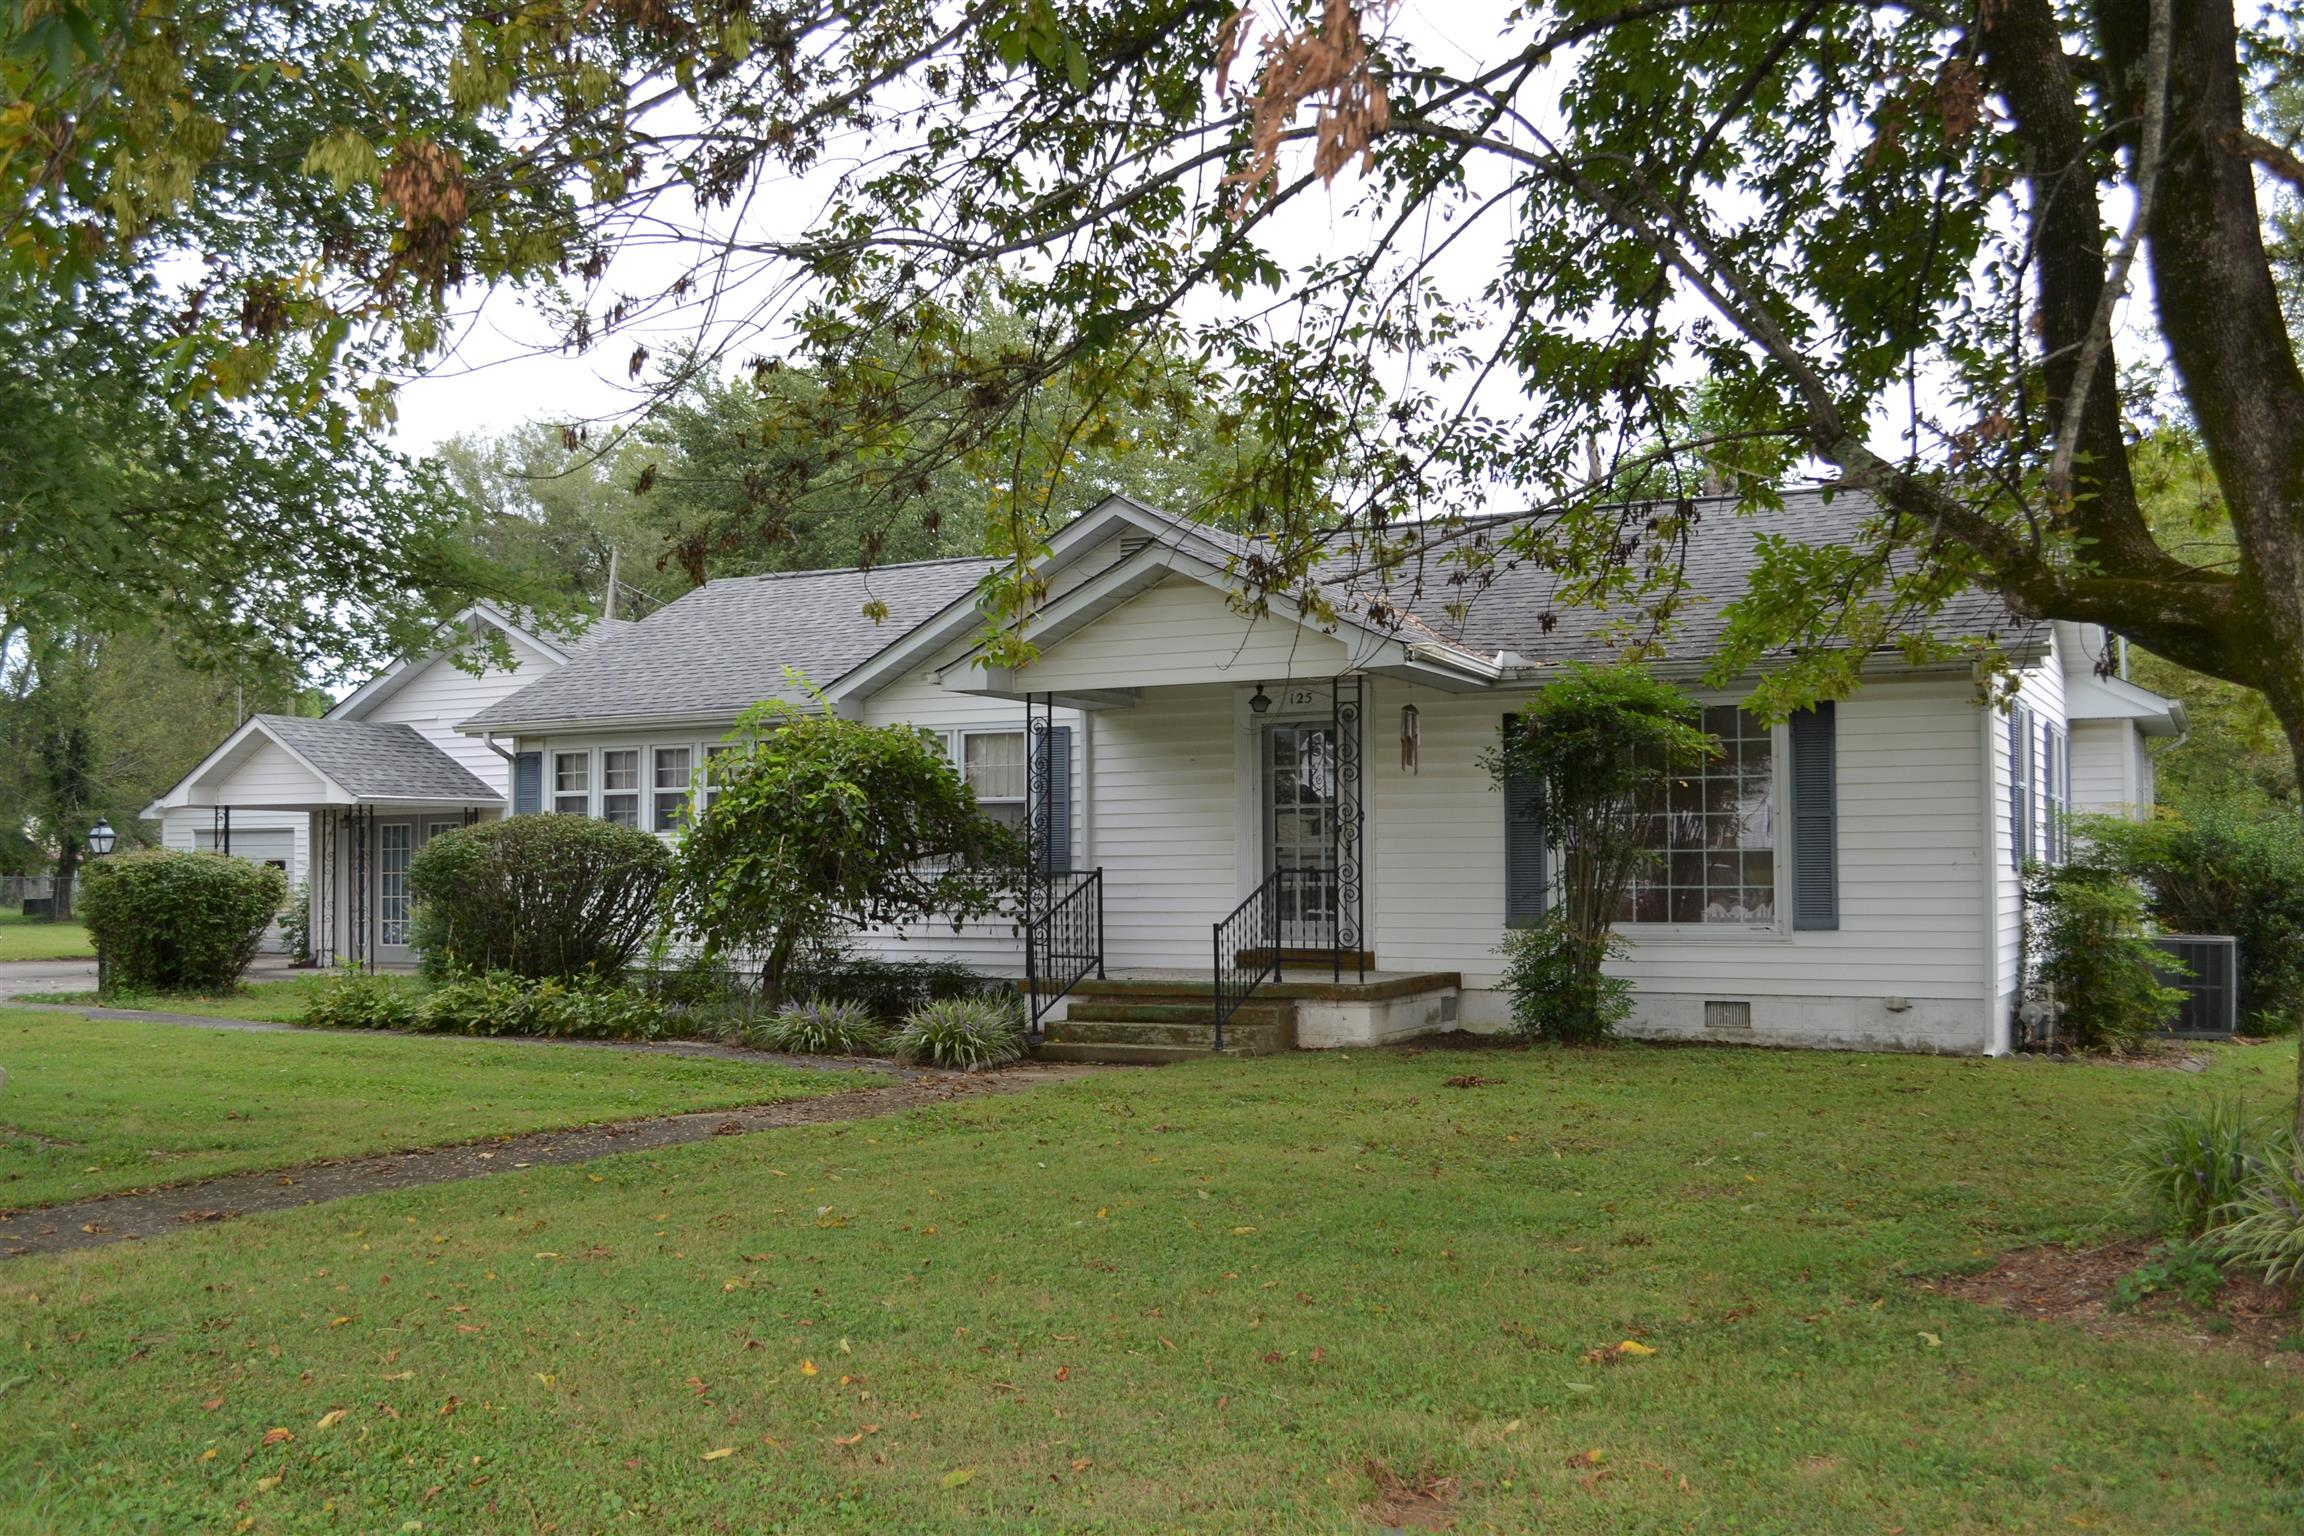 125 Anderson Dr, Tullahoma, TN 37388 - Tullahoma, TN real estate listing